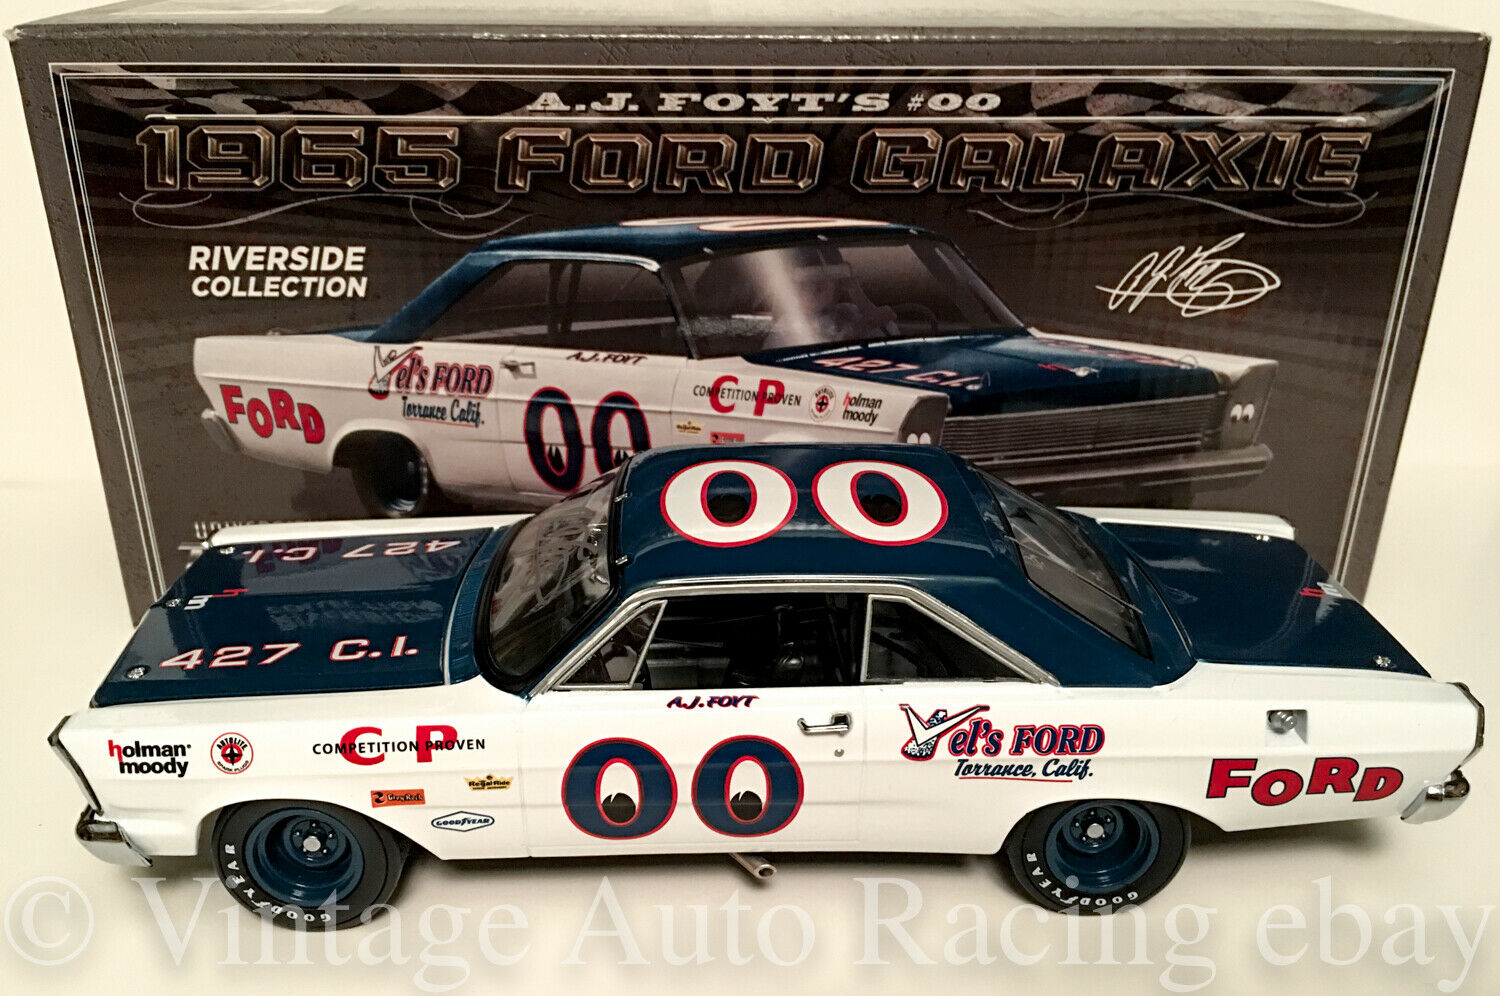 1965 A.J. FOYT AUTOGRAPHED AUTOGRAPHED AUTOGRAPHED FORD GALAXIE VEL'S FORD 1 24 UNIVERSITY RACING bef419